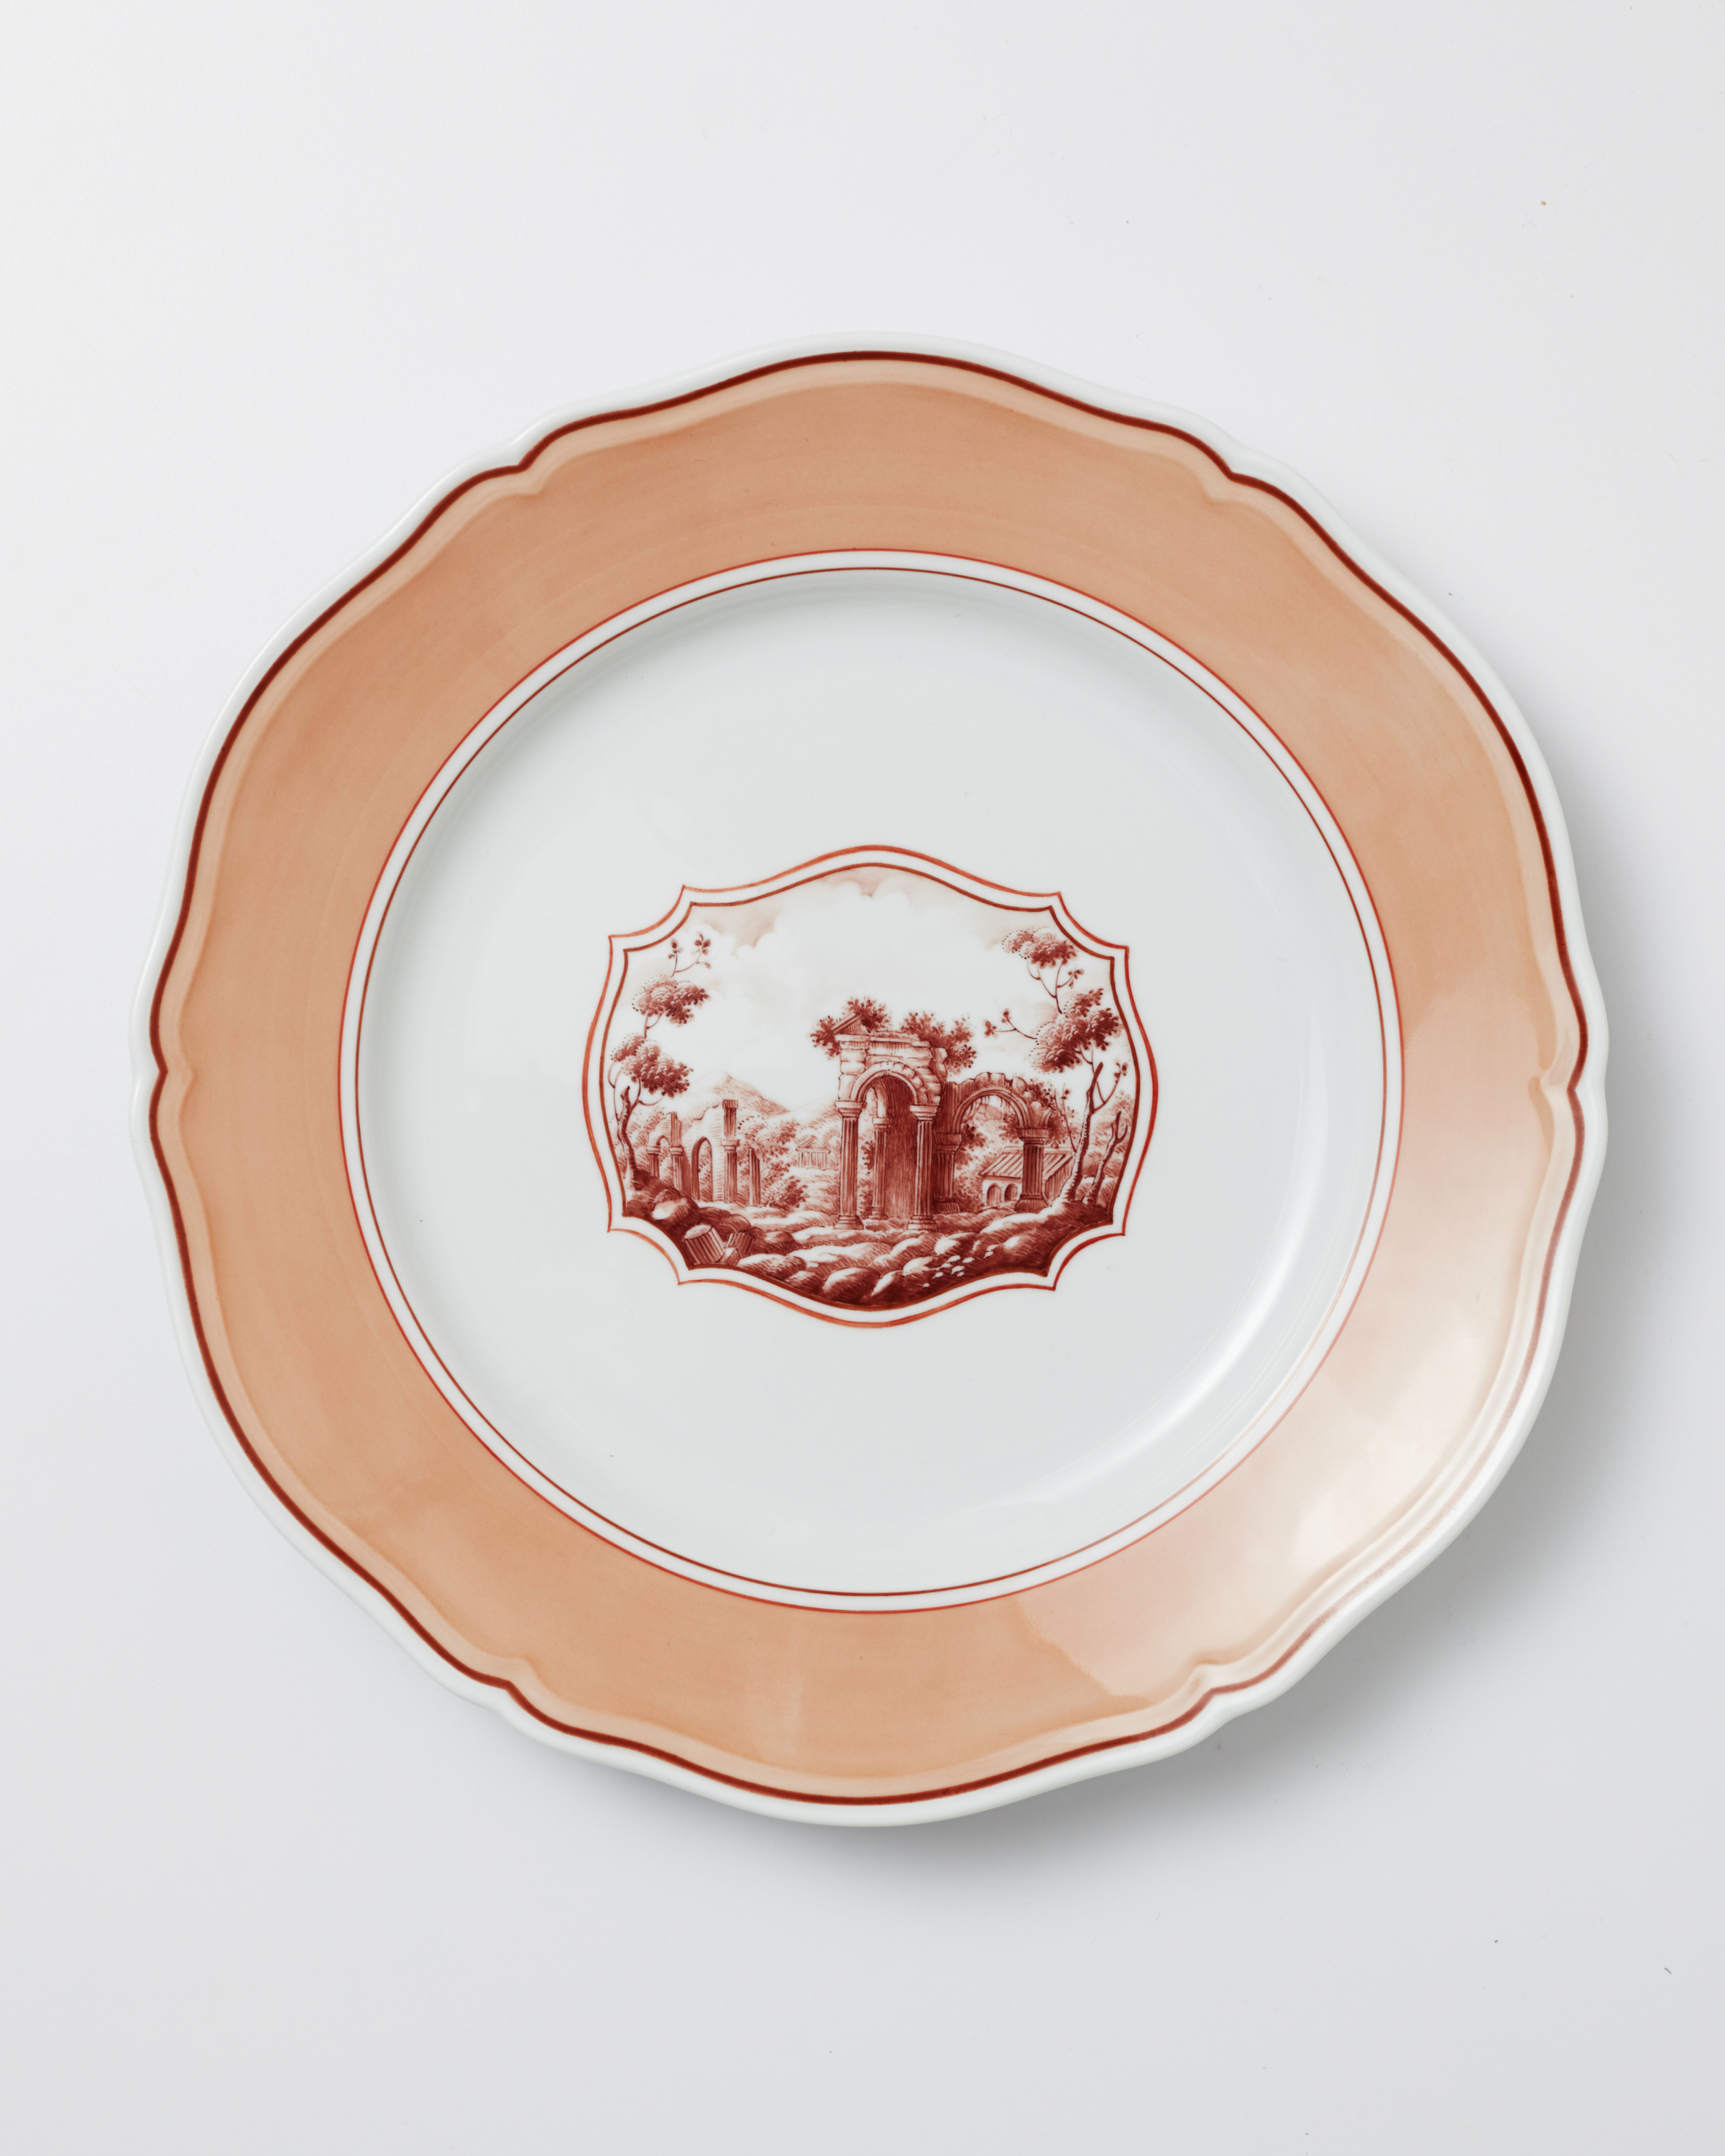 china-registry-vintage-charm-richard-ginori-toscana-dinnerware-006-d111317-1014.jpg